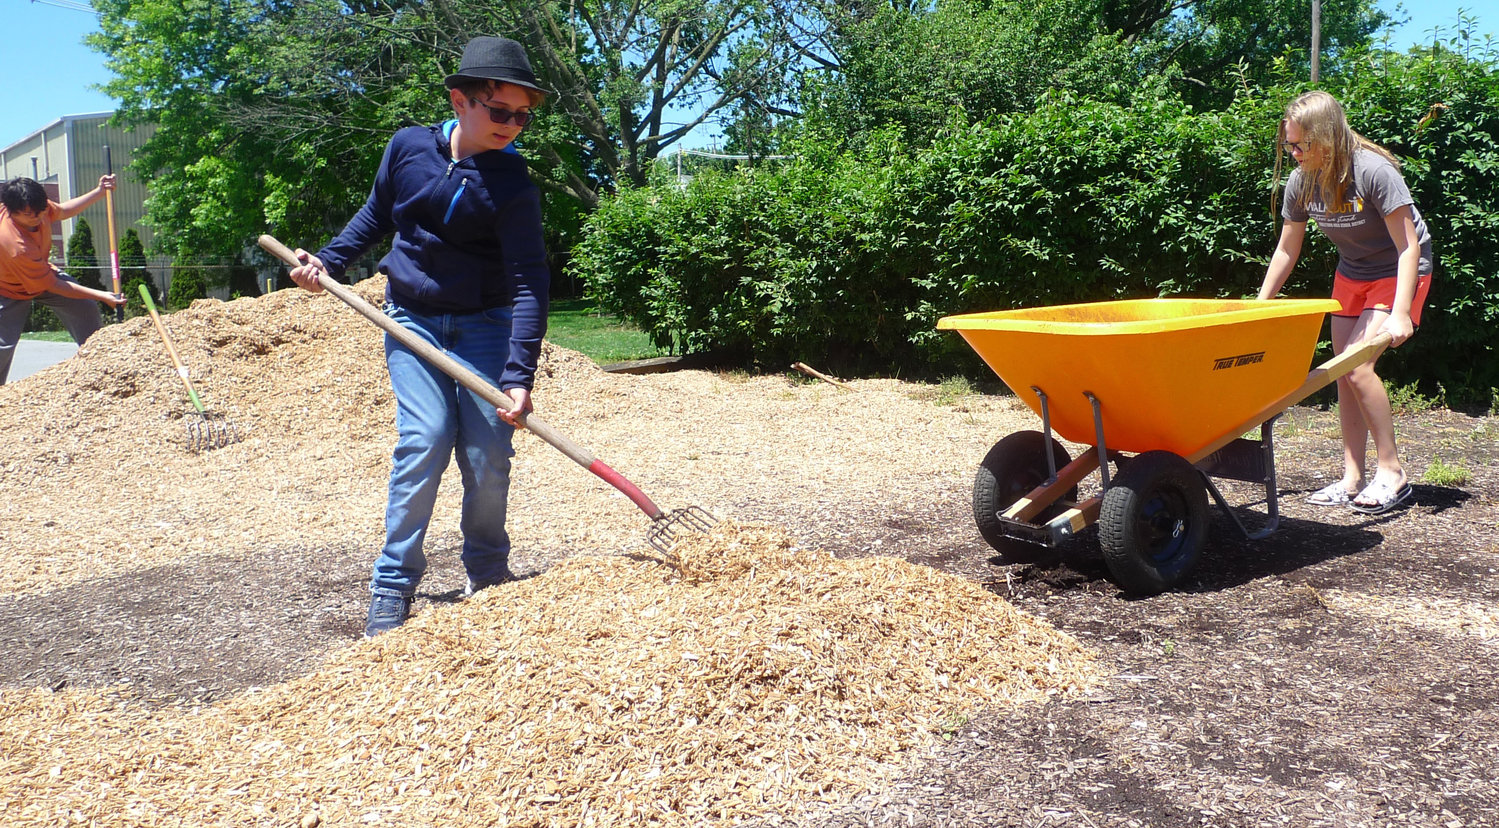 Middletown Communities That Care Youth Corps members Strummer Woodworth, of Hoffer Street, and Crystal Biesecker of Lower Royalton, spread new tan bark at Colston Park on South Wood Street, less than a week after the park had been hit by vandals on June 6.